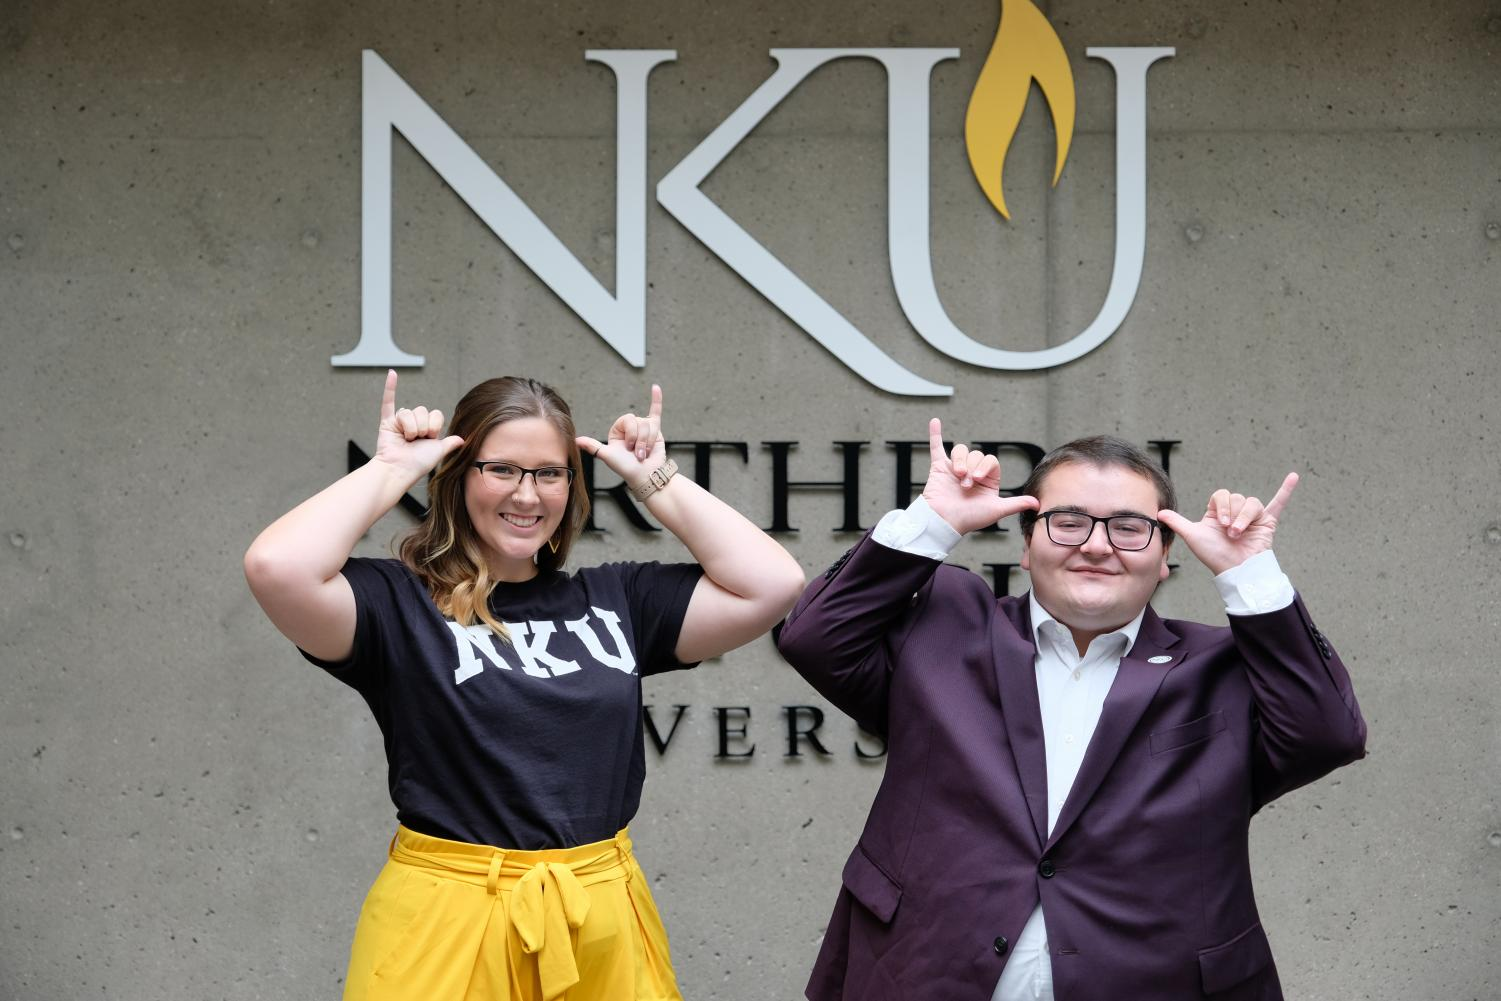 SGA President Jarett Lopez and Vice President Shelby Sanford Norse Up.